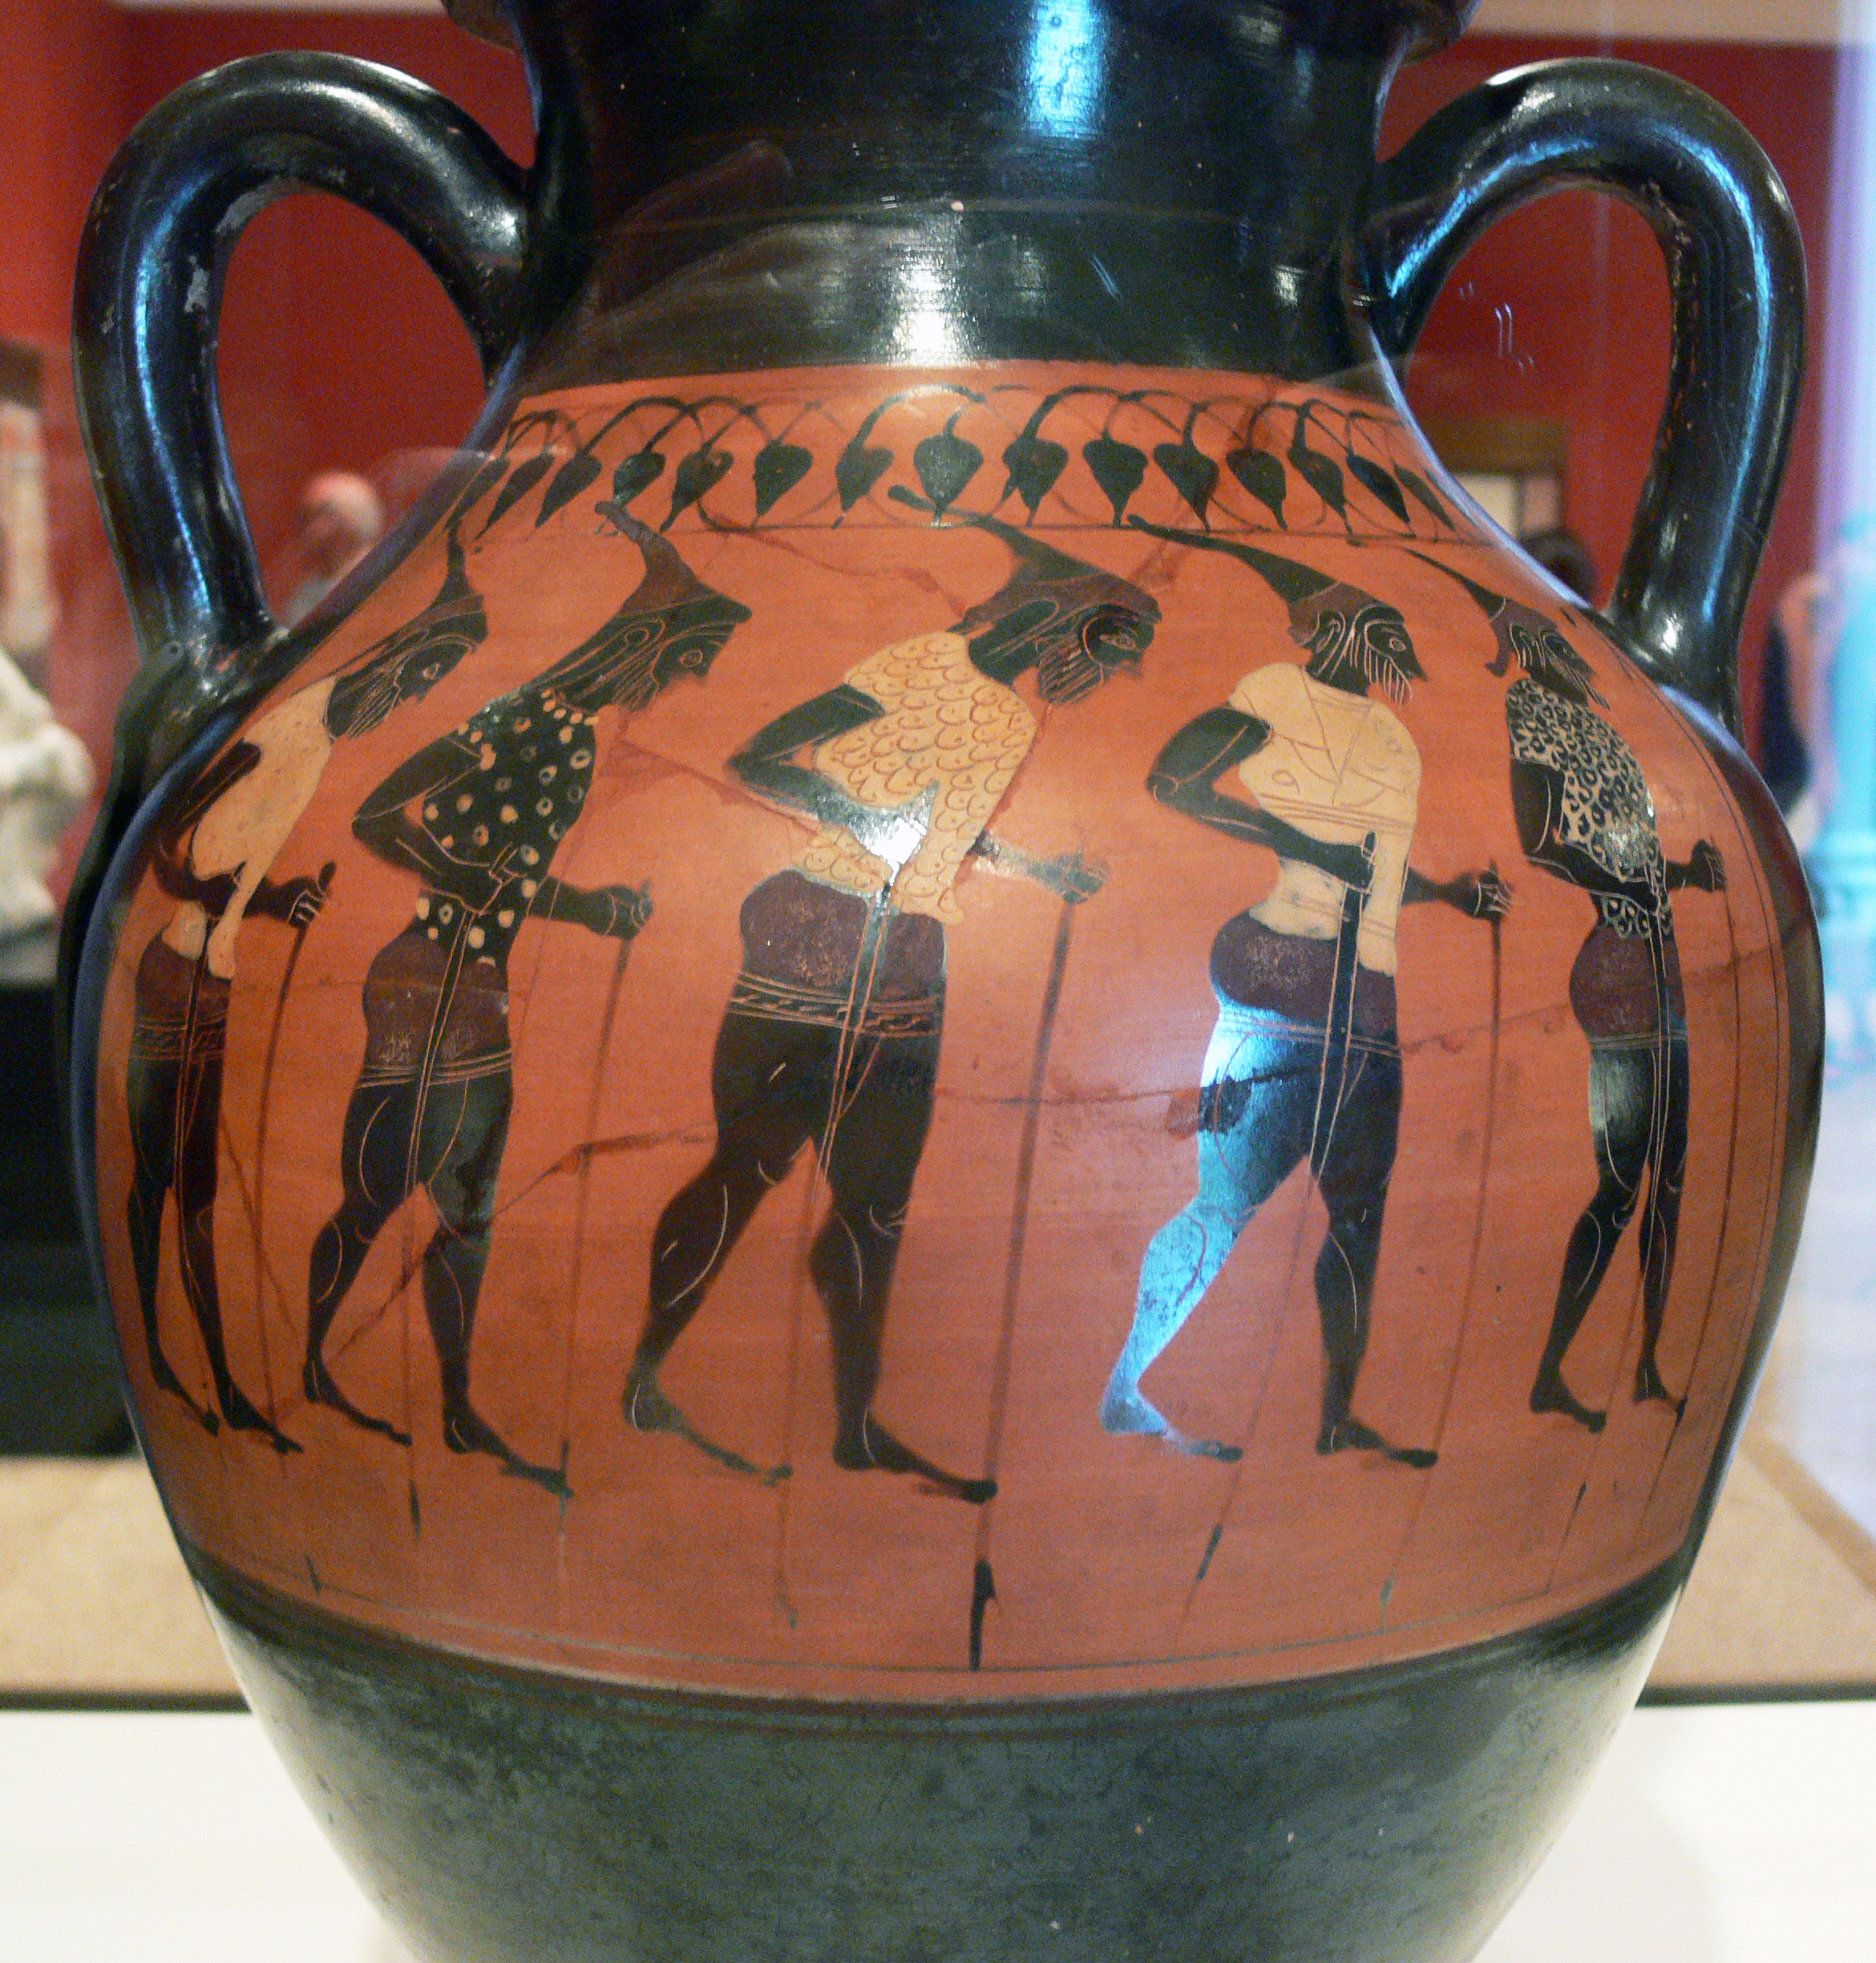 greek chorus in history The greek chorus continued to play an important role in classical greek drama, especially in tragedy ranging in number from 50 in the time of thespis to 15 in later classical greek drama.